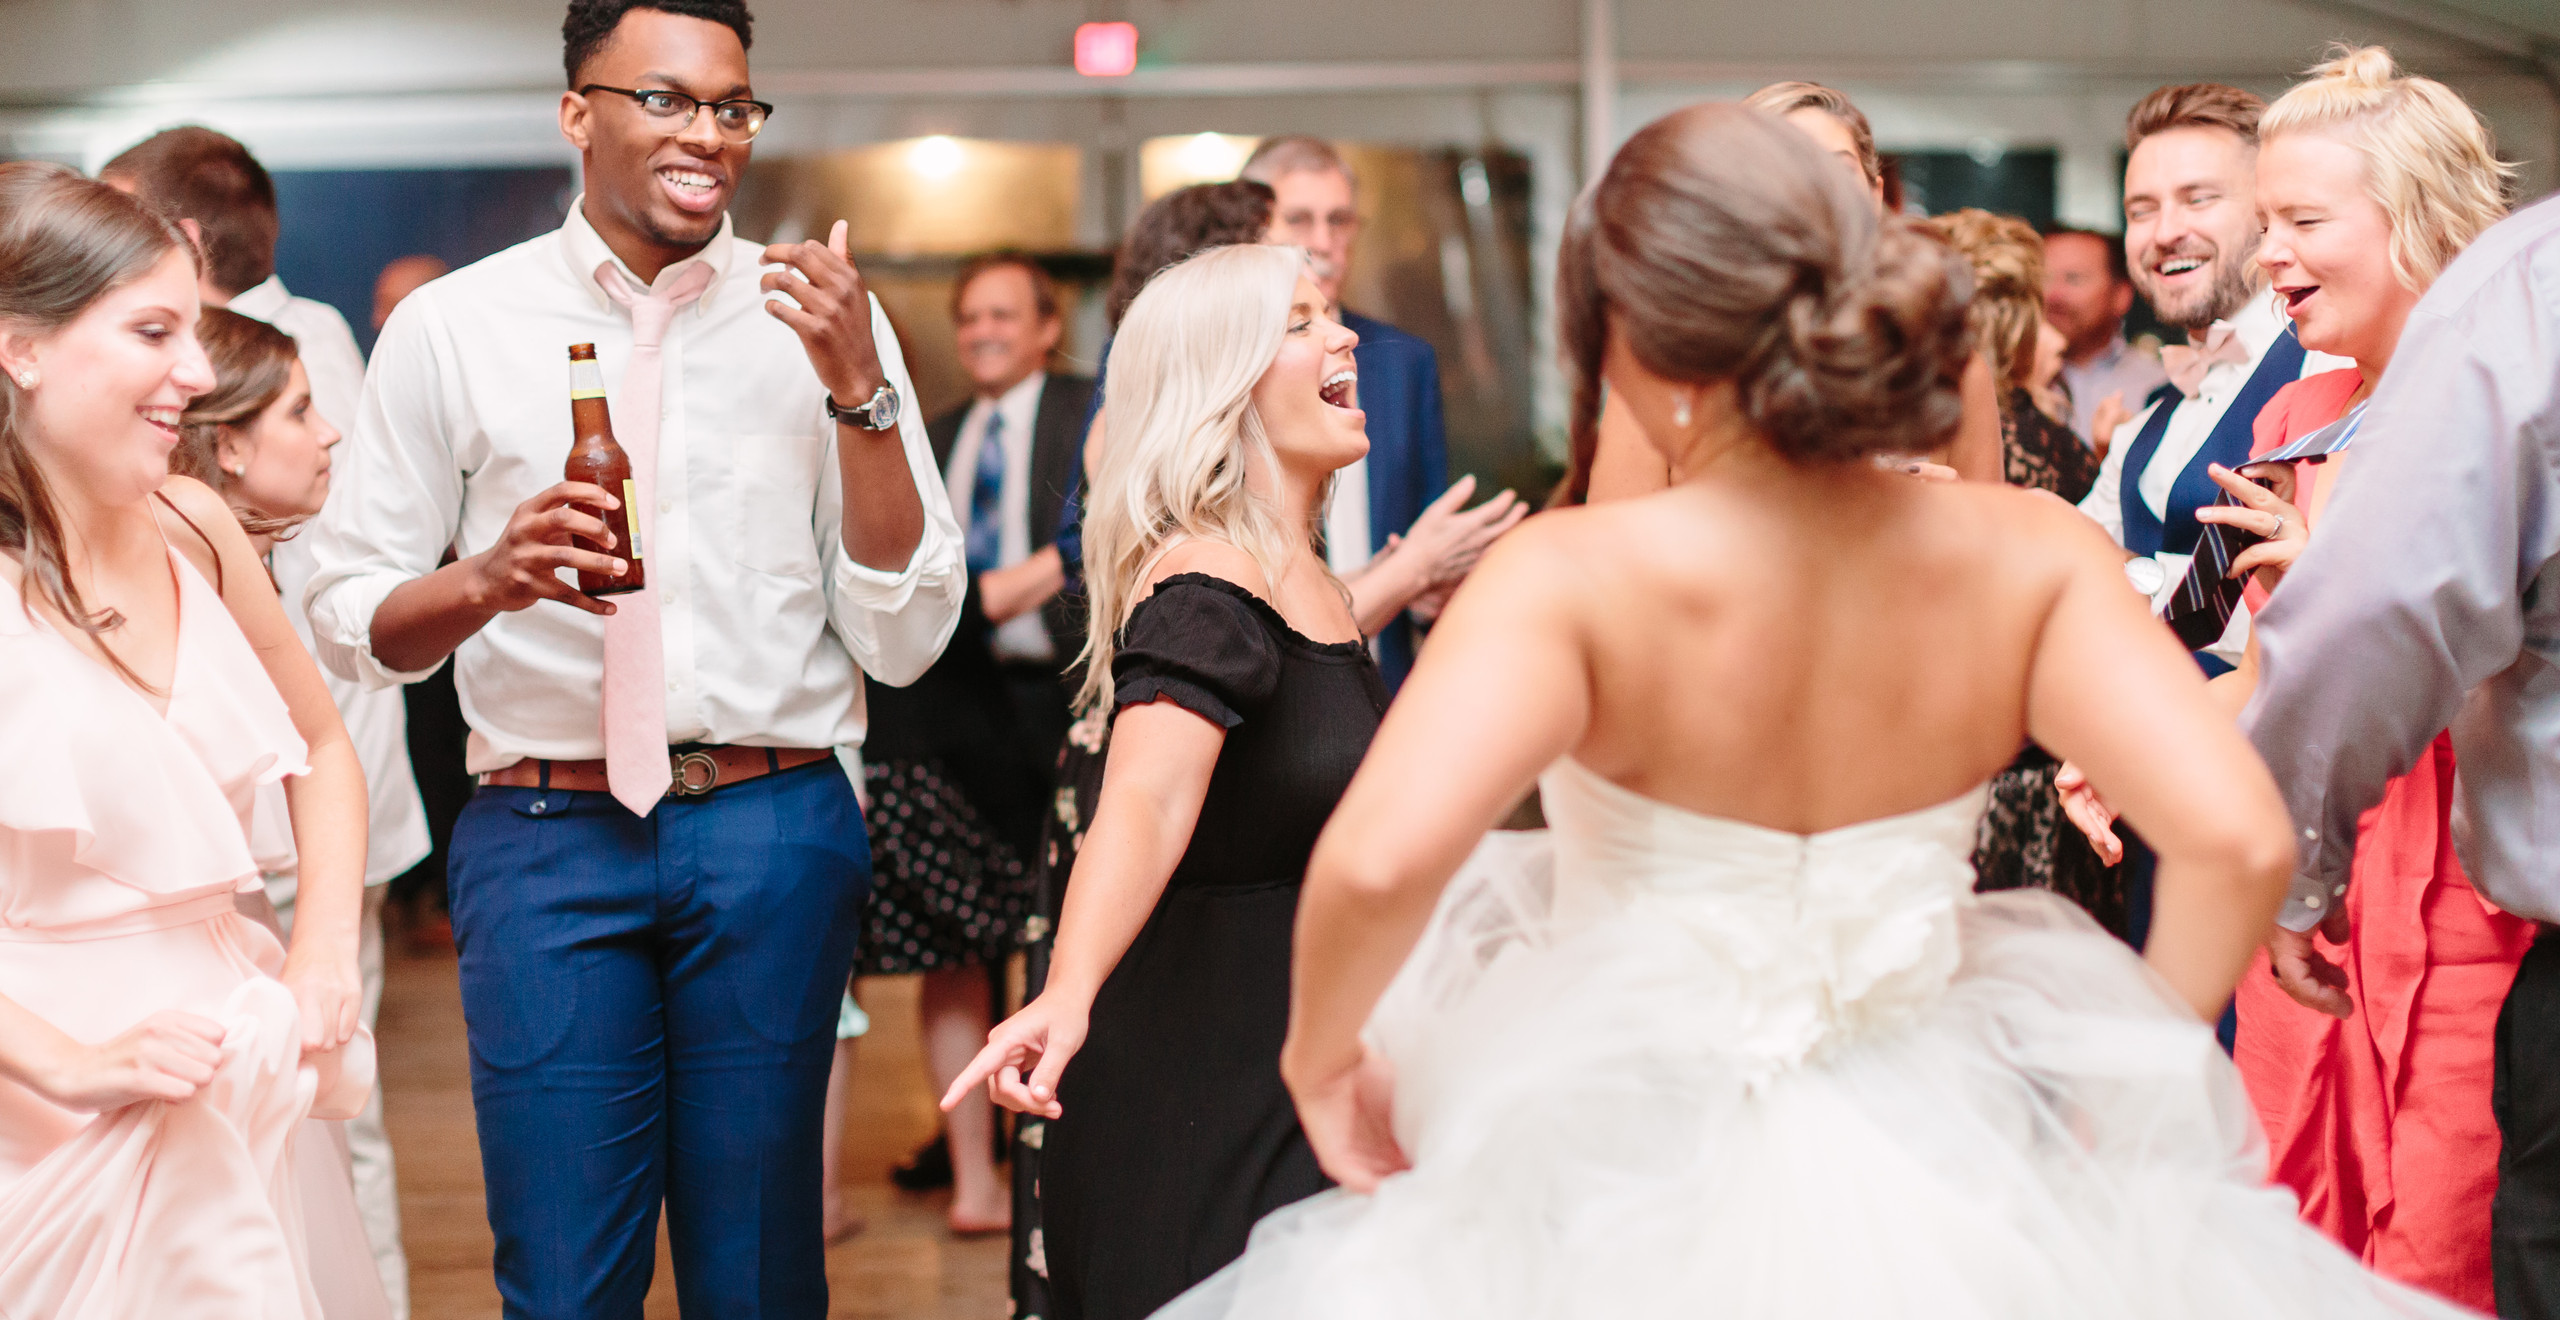 guests smiling and dancing with bride